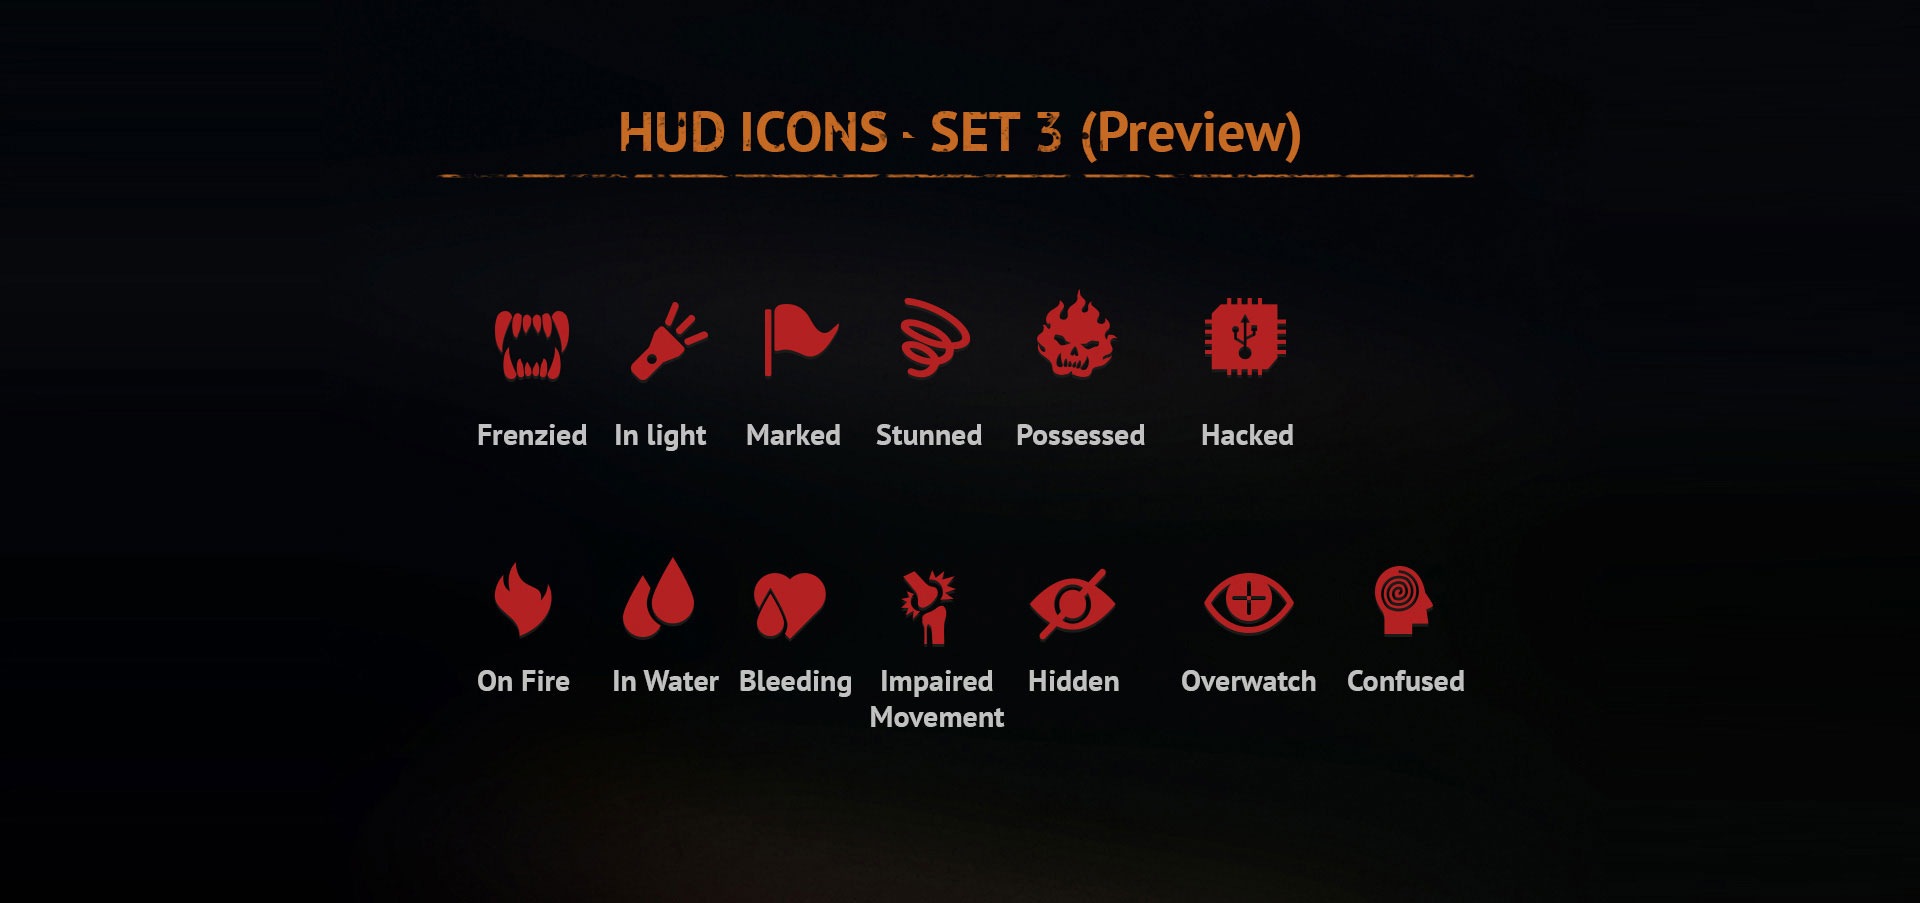 funcom-ui-gameinterface-gameart-roadtoeden-ps4-xbox-tactical-adventure-game-xcom-turn-based-gameux-game-experience-icons2